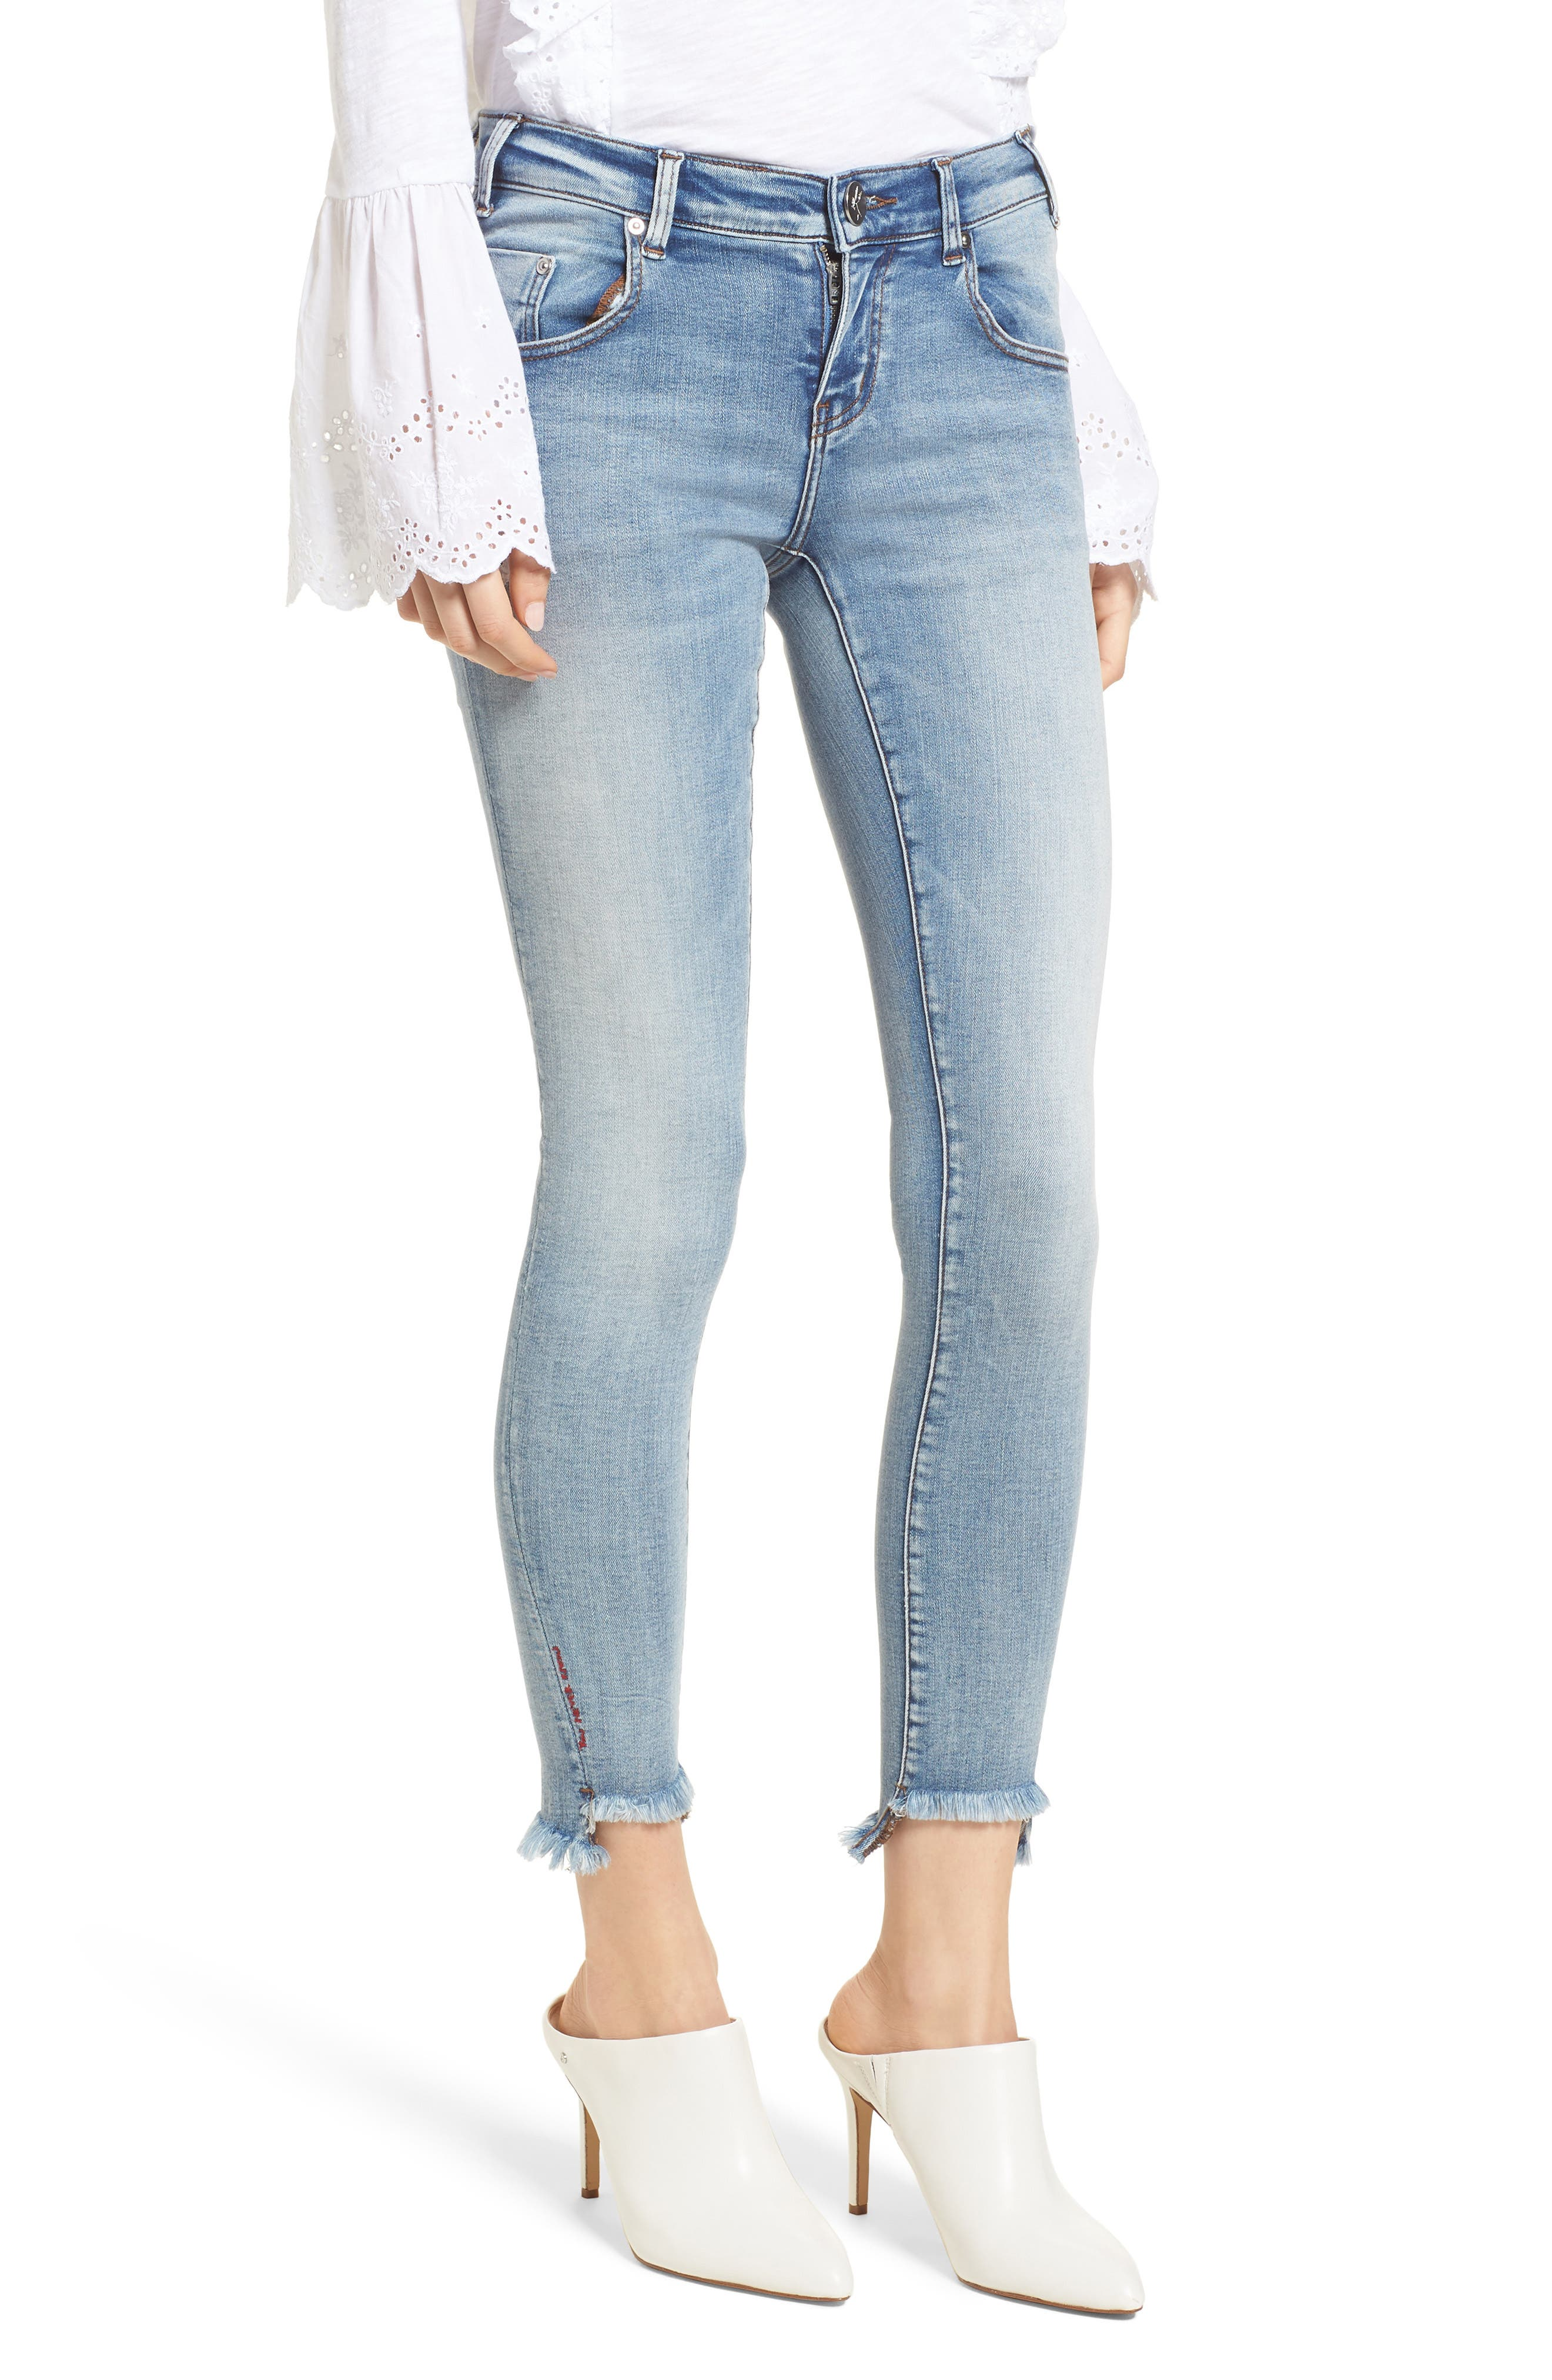 Freebirds Skinny Jeans,                             Main thumbnail 1, color,                             Cobaine